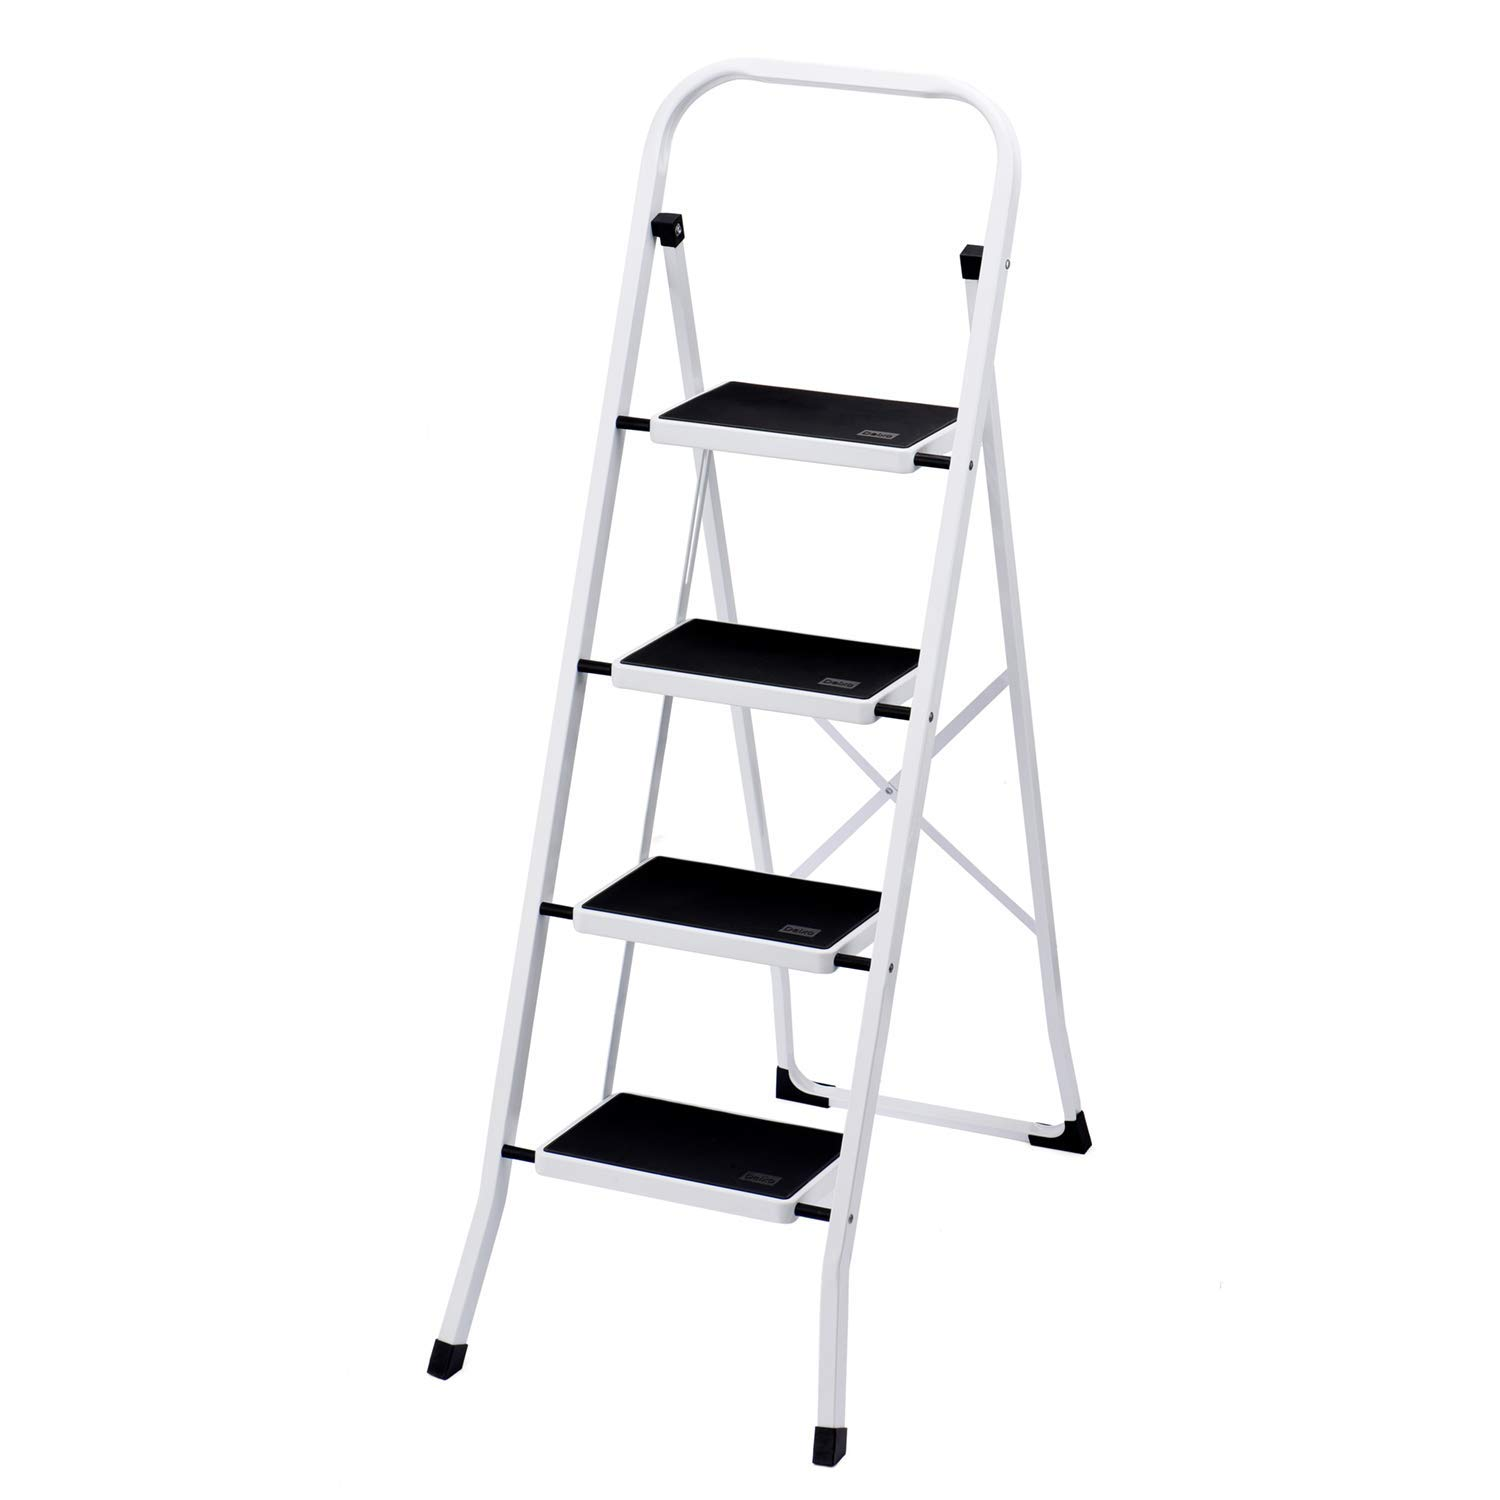 Delxo Folding 4 Step Ladder Ladder with Convenient Handgrip Anti-Slip Sturdy and Wide Pedal 330lbs Portable Steel Step Stool White and Black 4-Feet (4 Step) by Delxo